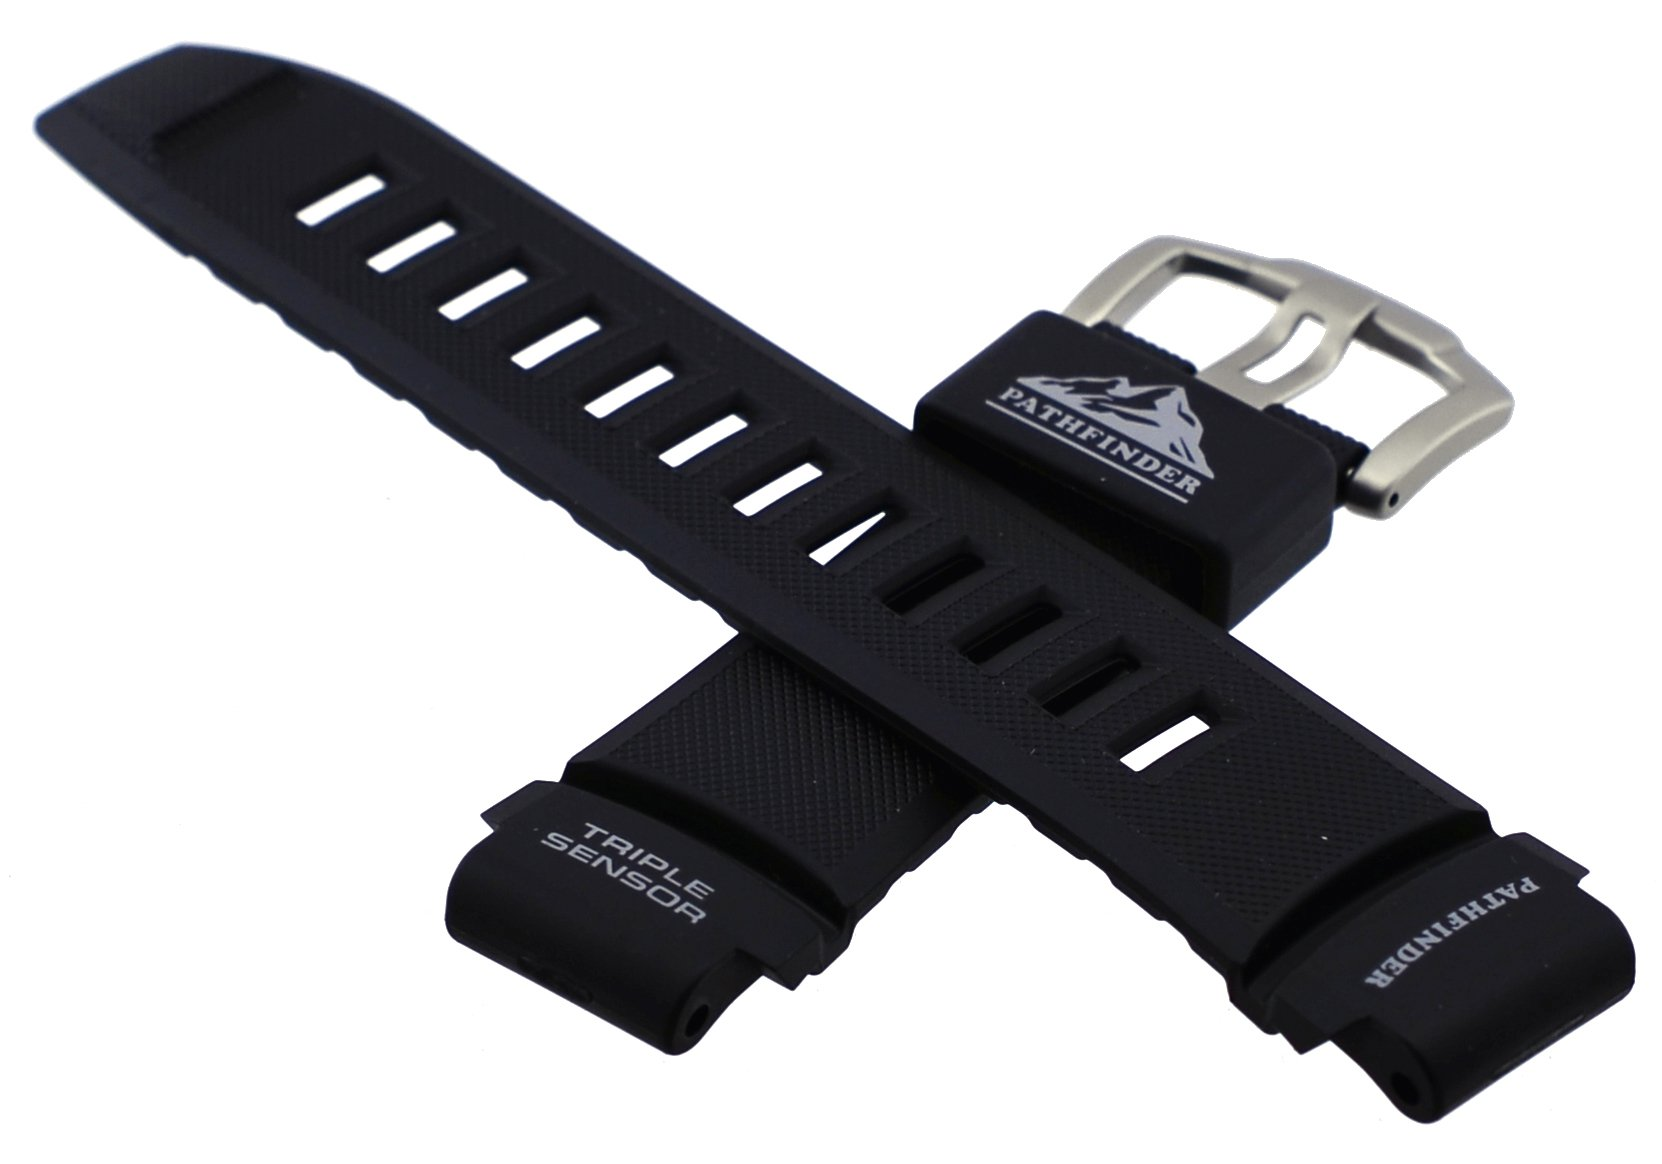 Casio #10332894 Genuine Replacement Strap for Pathfinder Watch Model #Paw2000-1